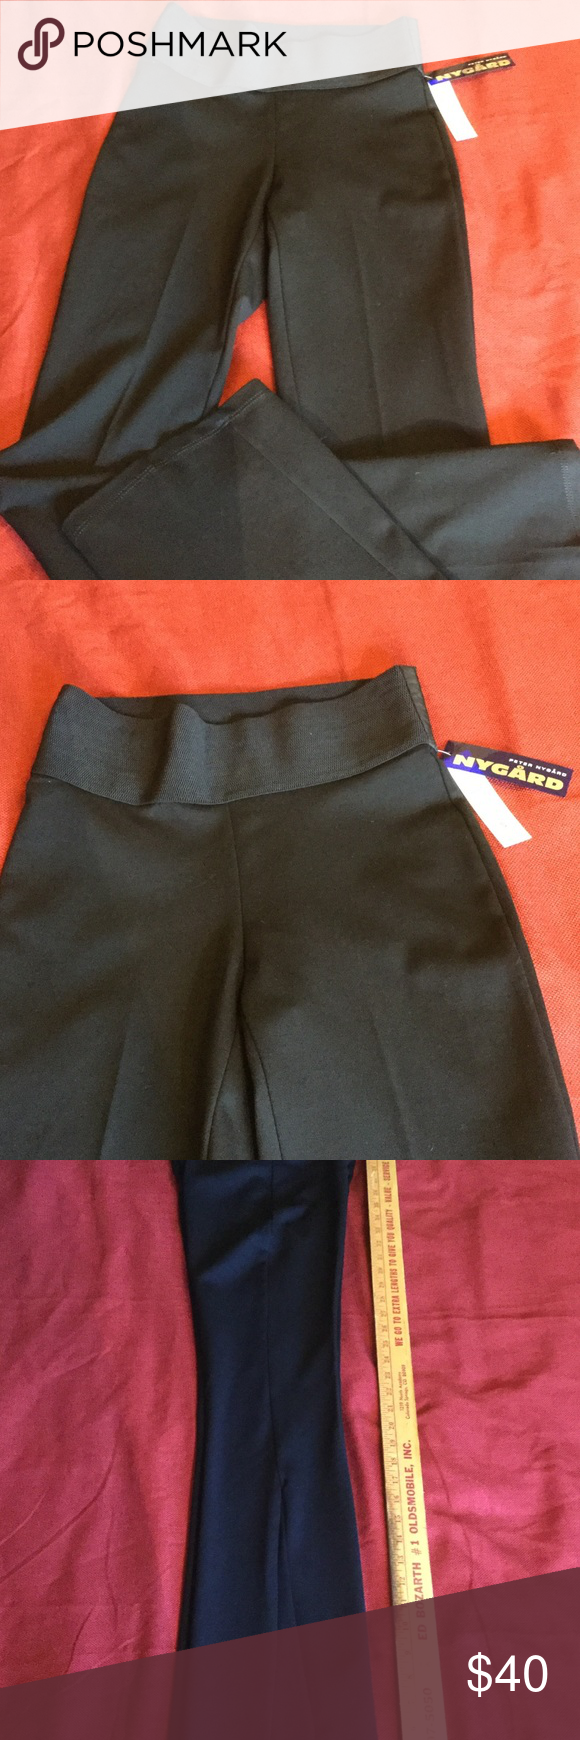 Nygard Slims Bootcut Ponte Knit Pants NWT Nygard Slims bootcut ponte knit pants. Size 6-8 Missy Tall. These lovely ponte knit pants run small, and are definitely a 6 rather than an 8. .The inseam measures 34 inches and the waist band measures 13 1/2 .  Nygard Slims Pants Boot Cut & Flare